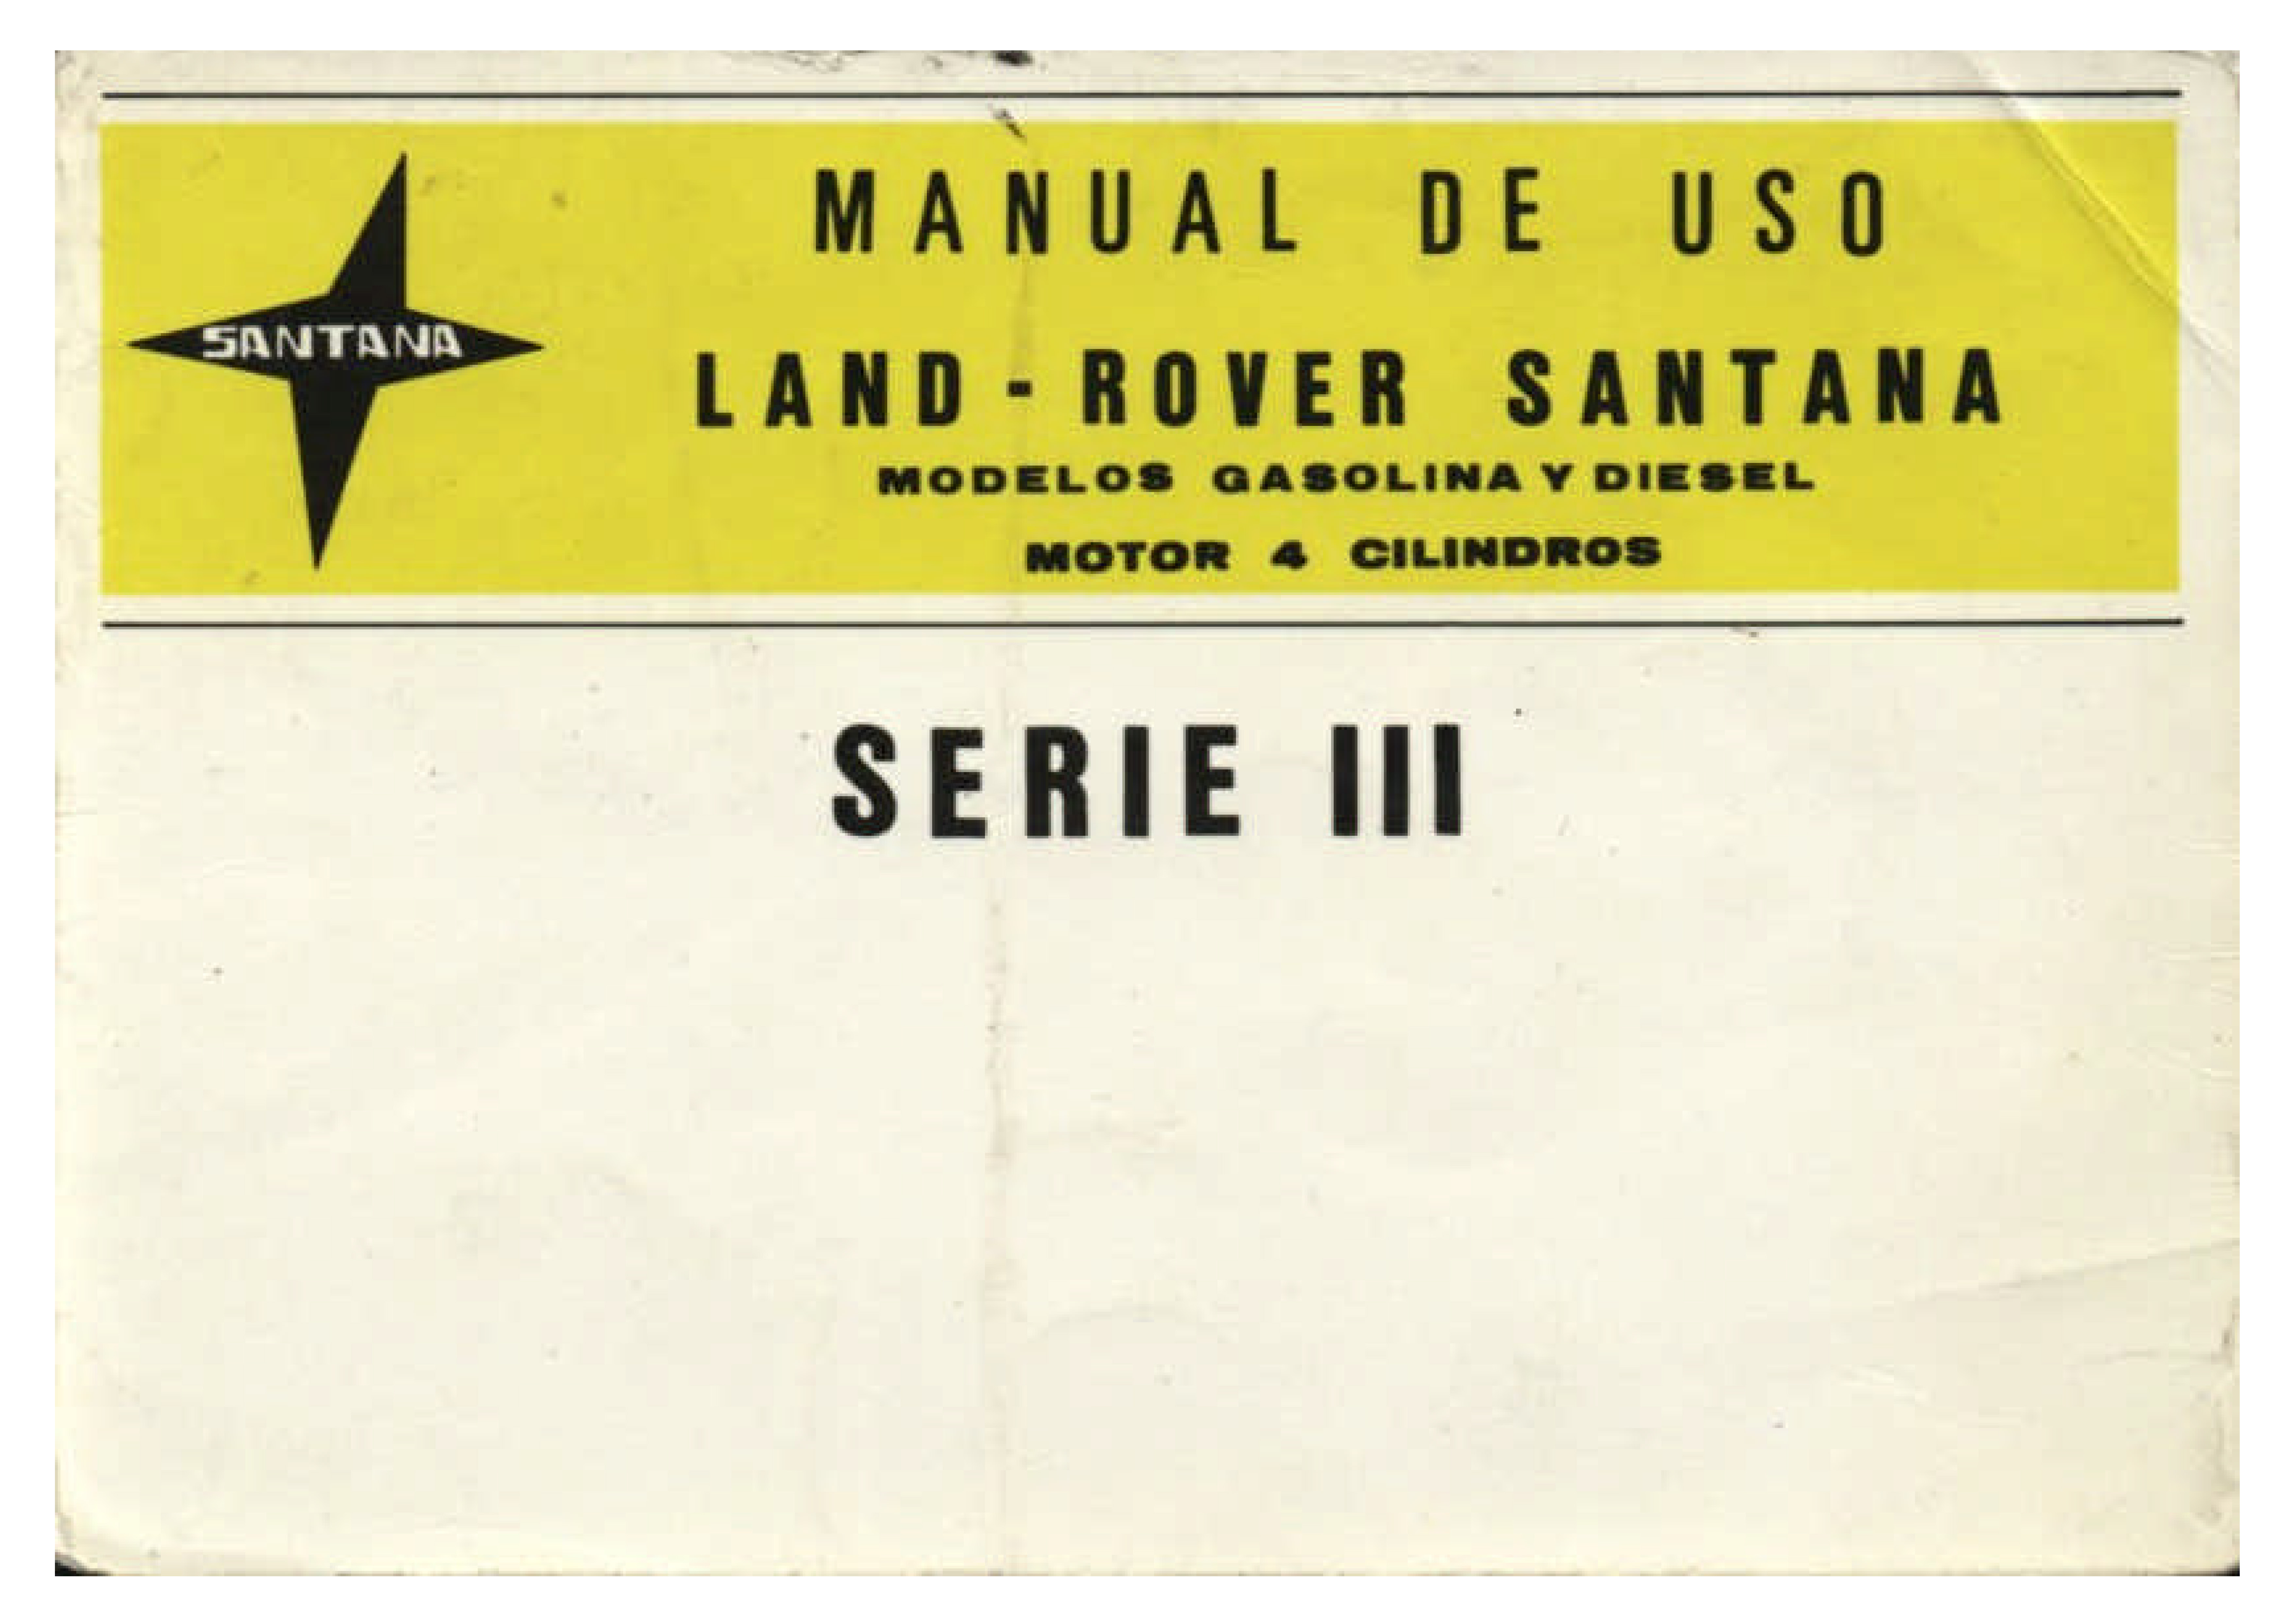 manual land rover cazorla 6 cilindros